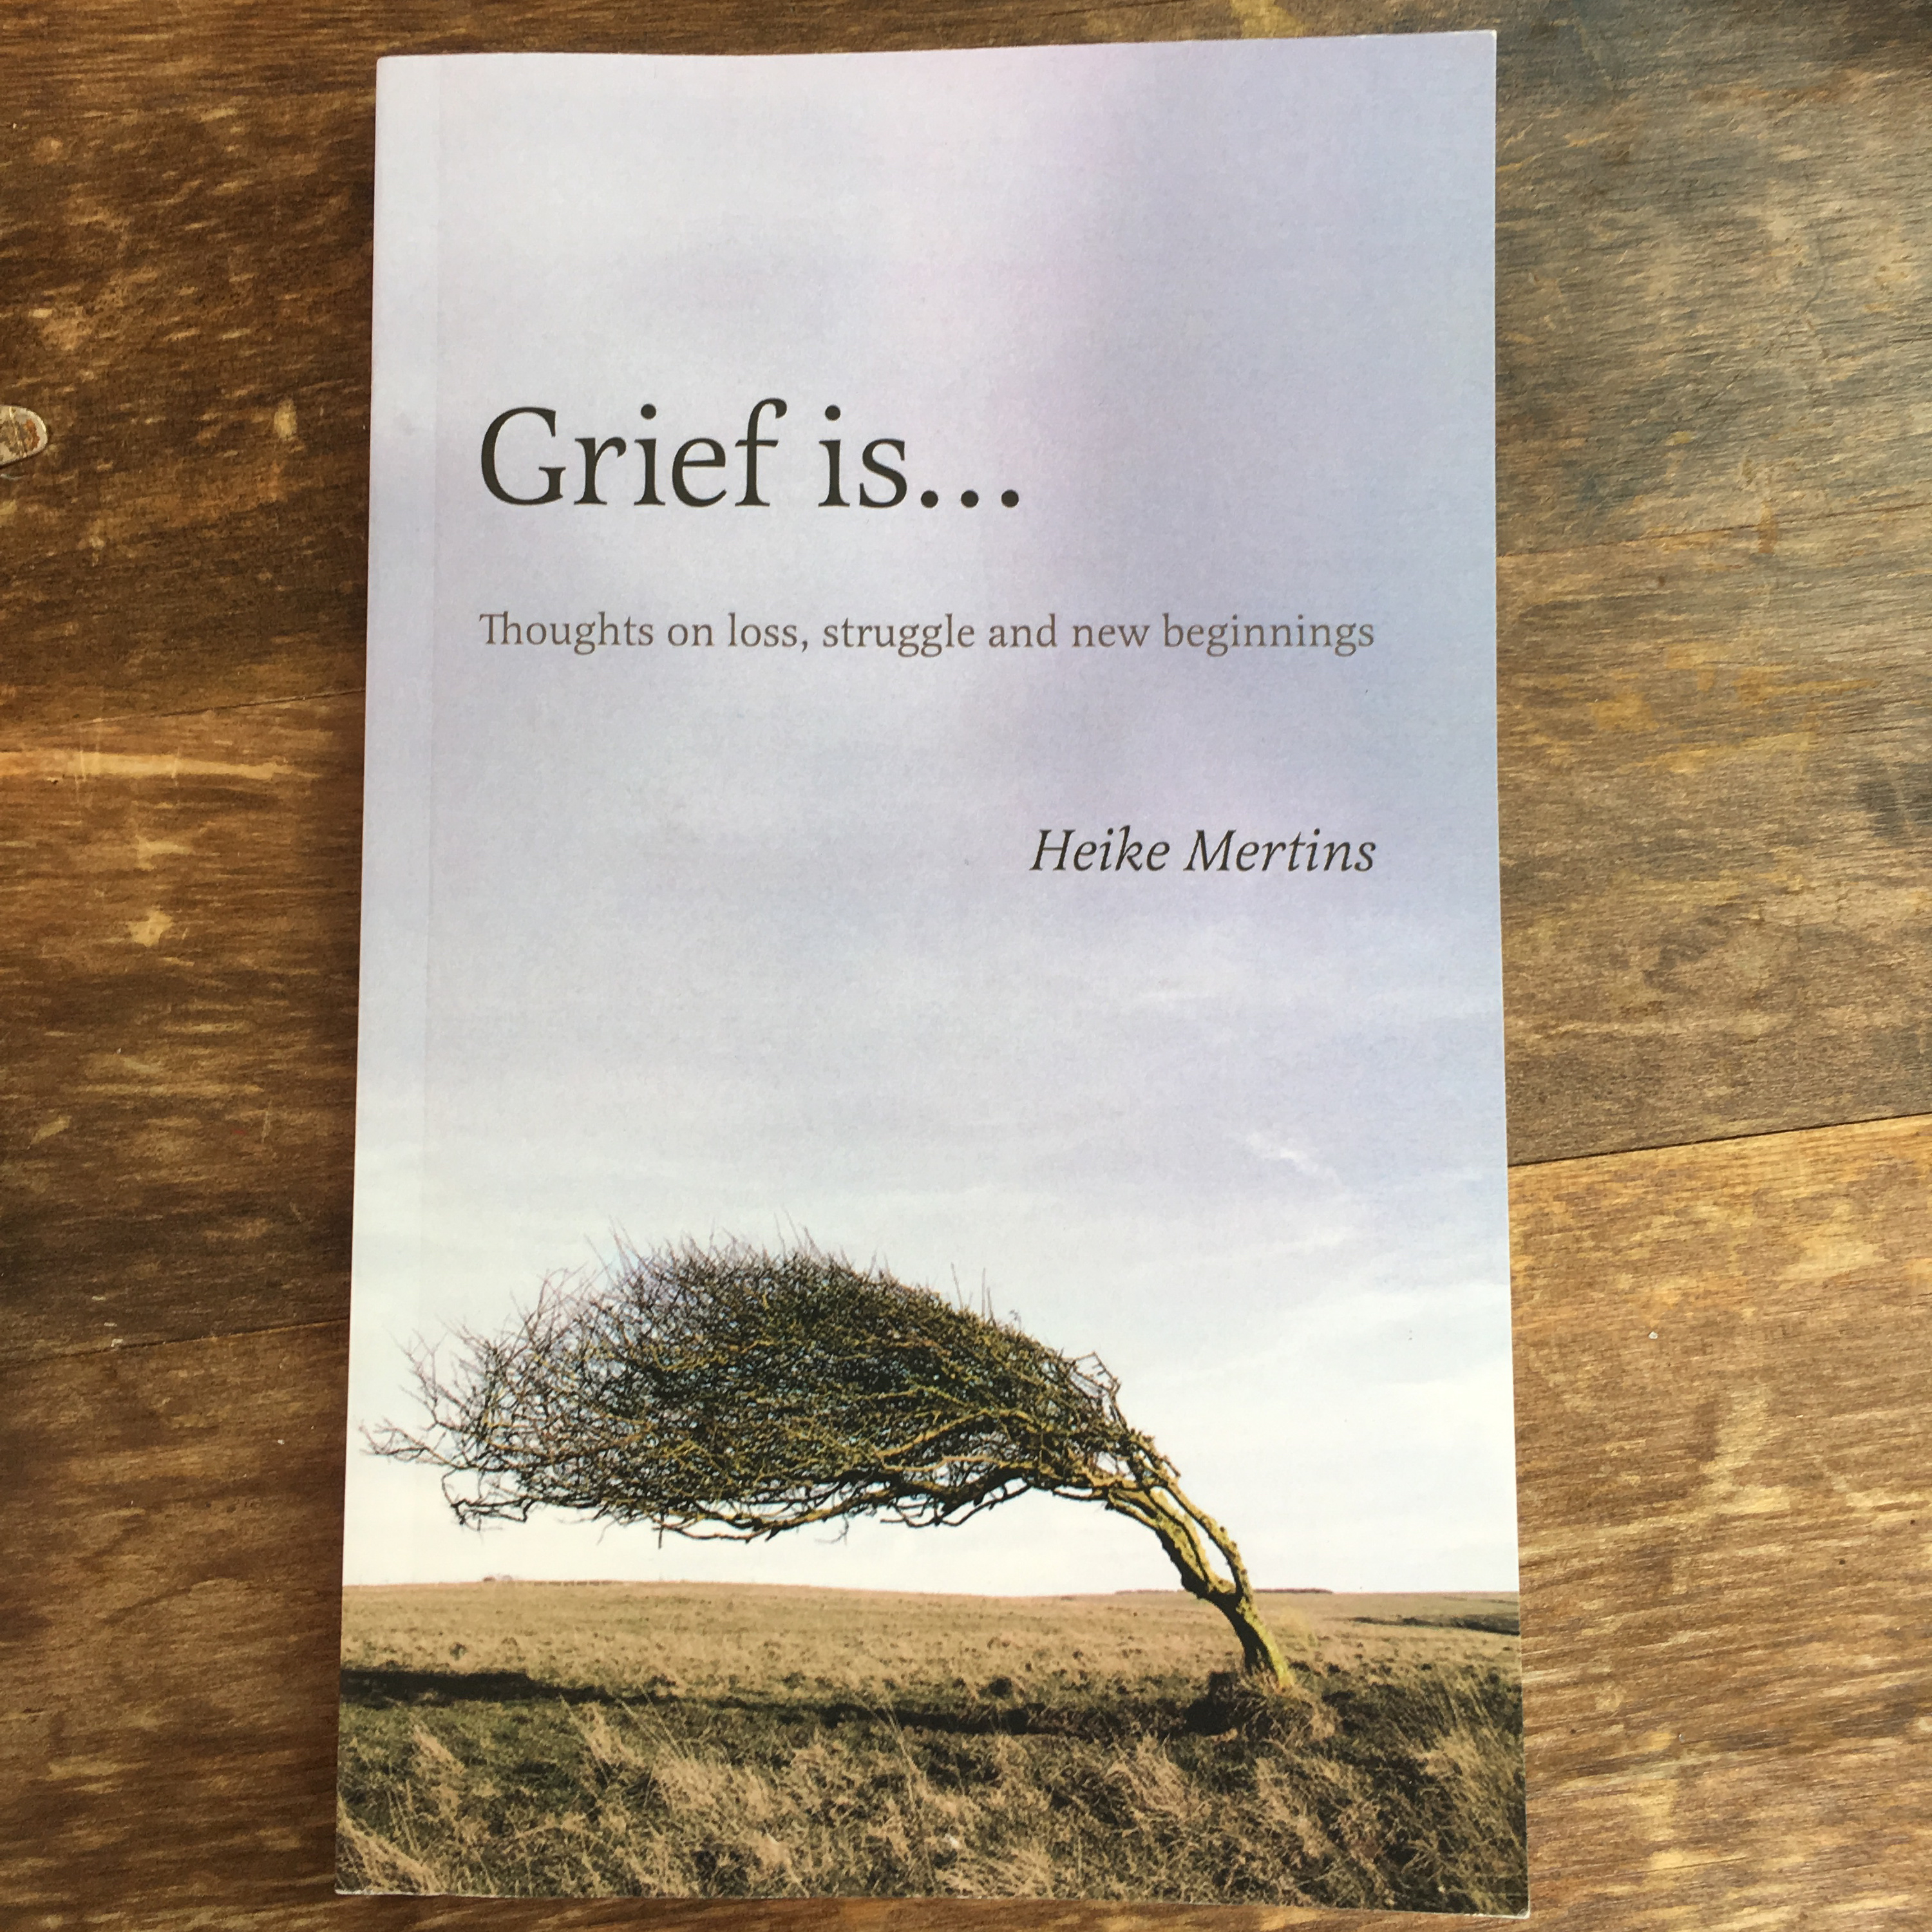 22. Grief is . . . –with Heike Mertins